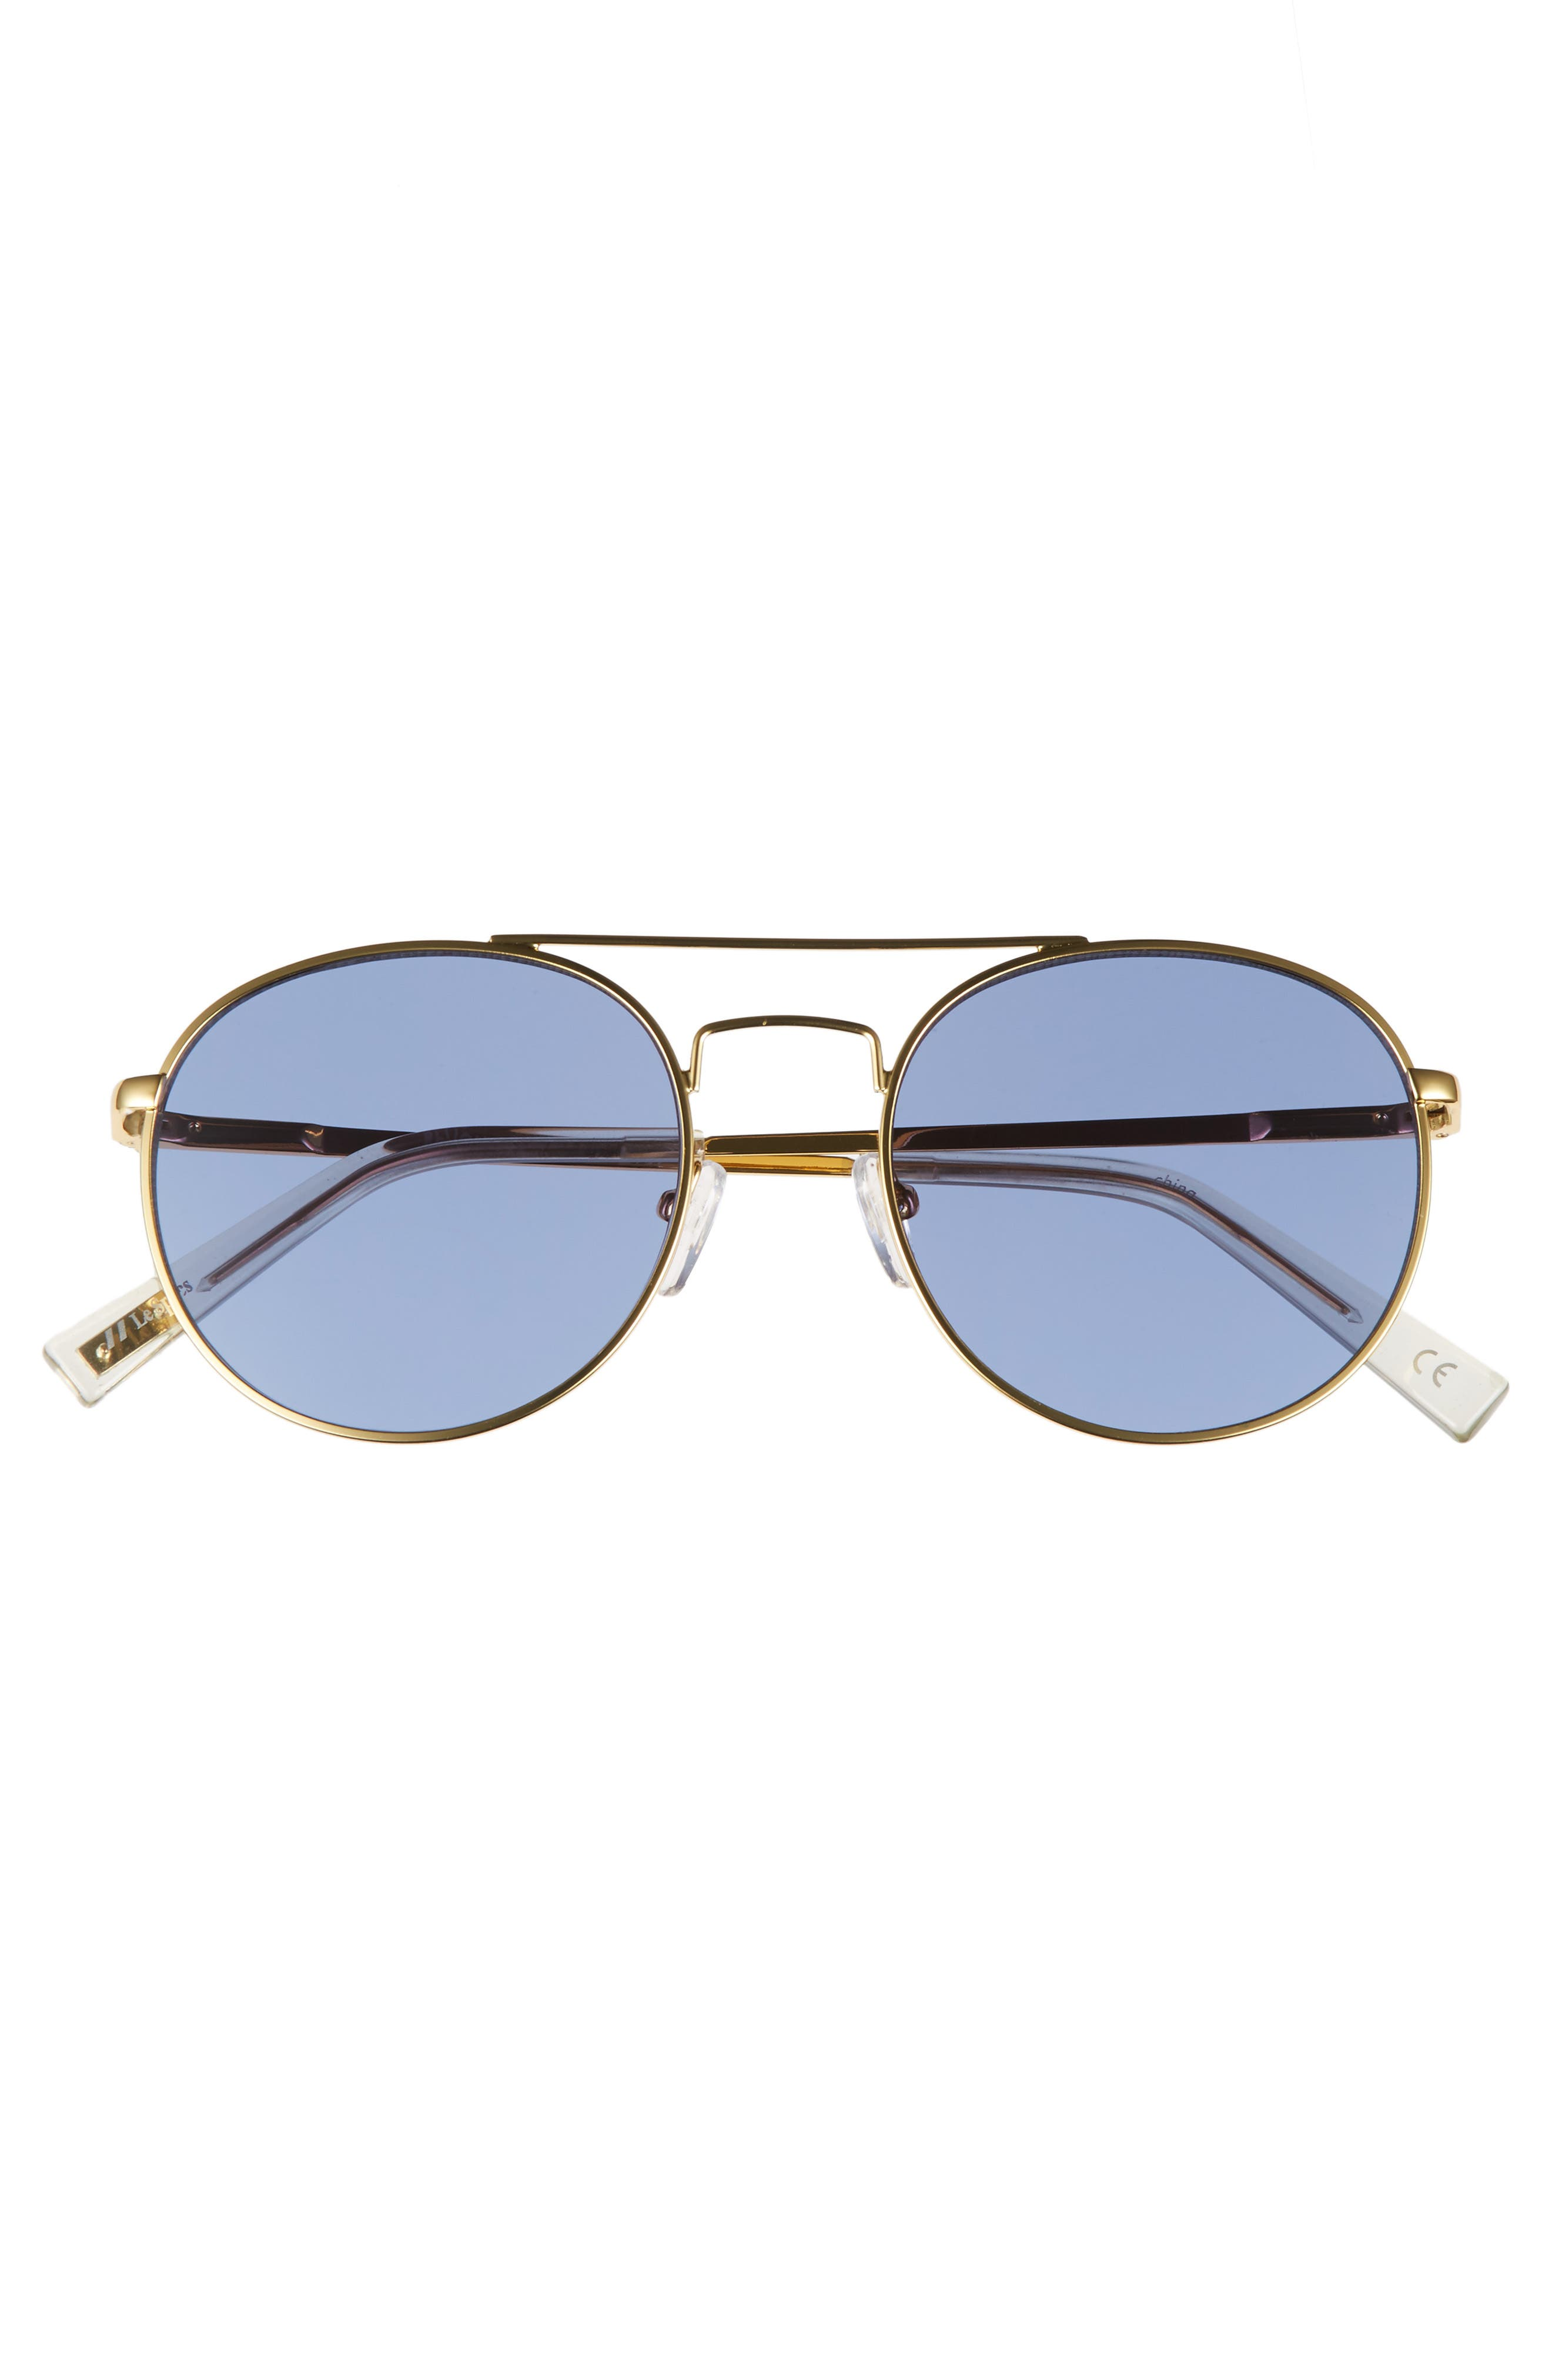 Revolution 53mm Aviator Sunglasses,                             Alternate thumbnail 3, color,                             Bright Gold